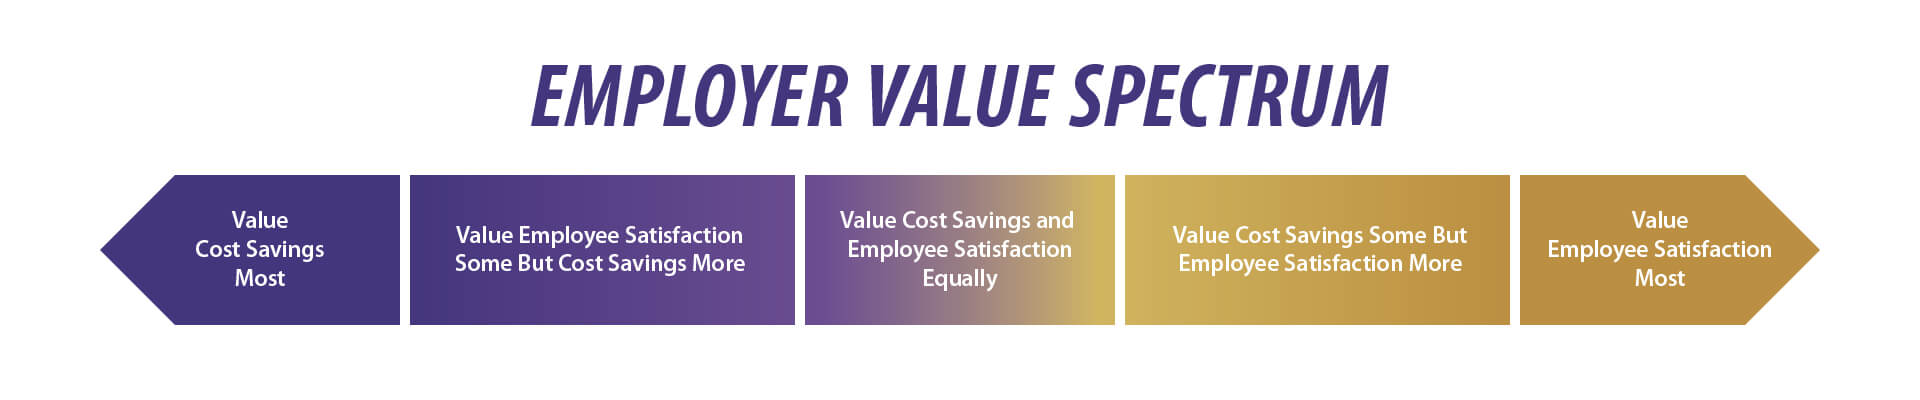 Employer value spectrum explaining the benefits of ART for emoployers. Gold and purple